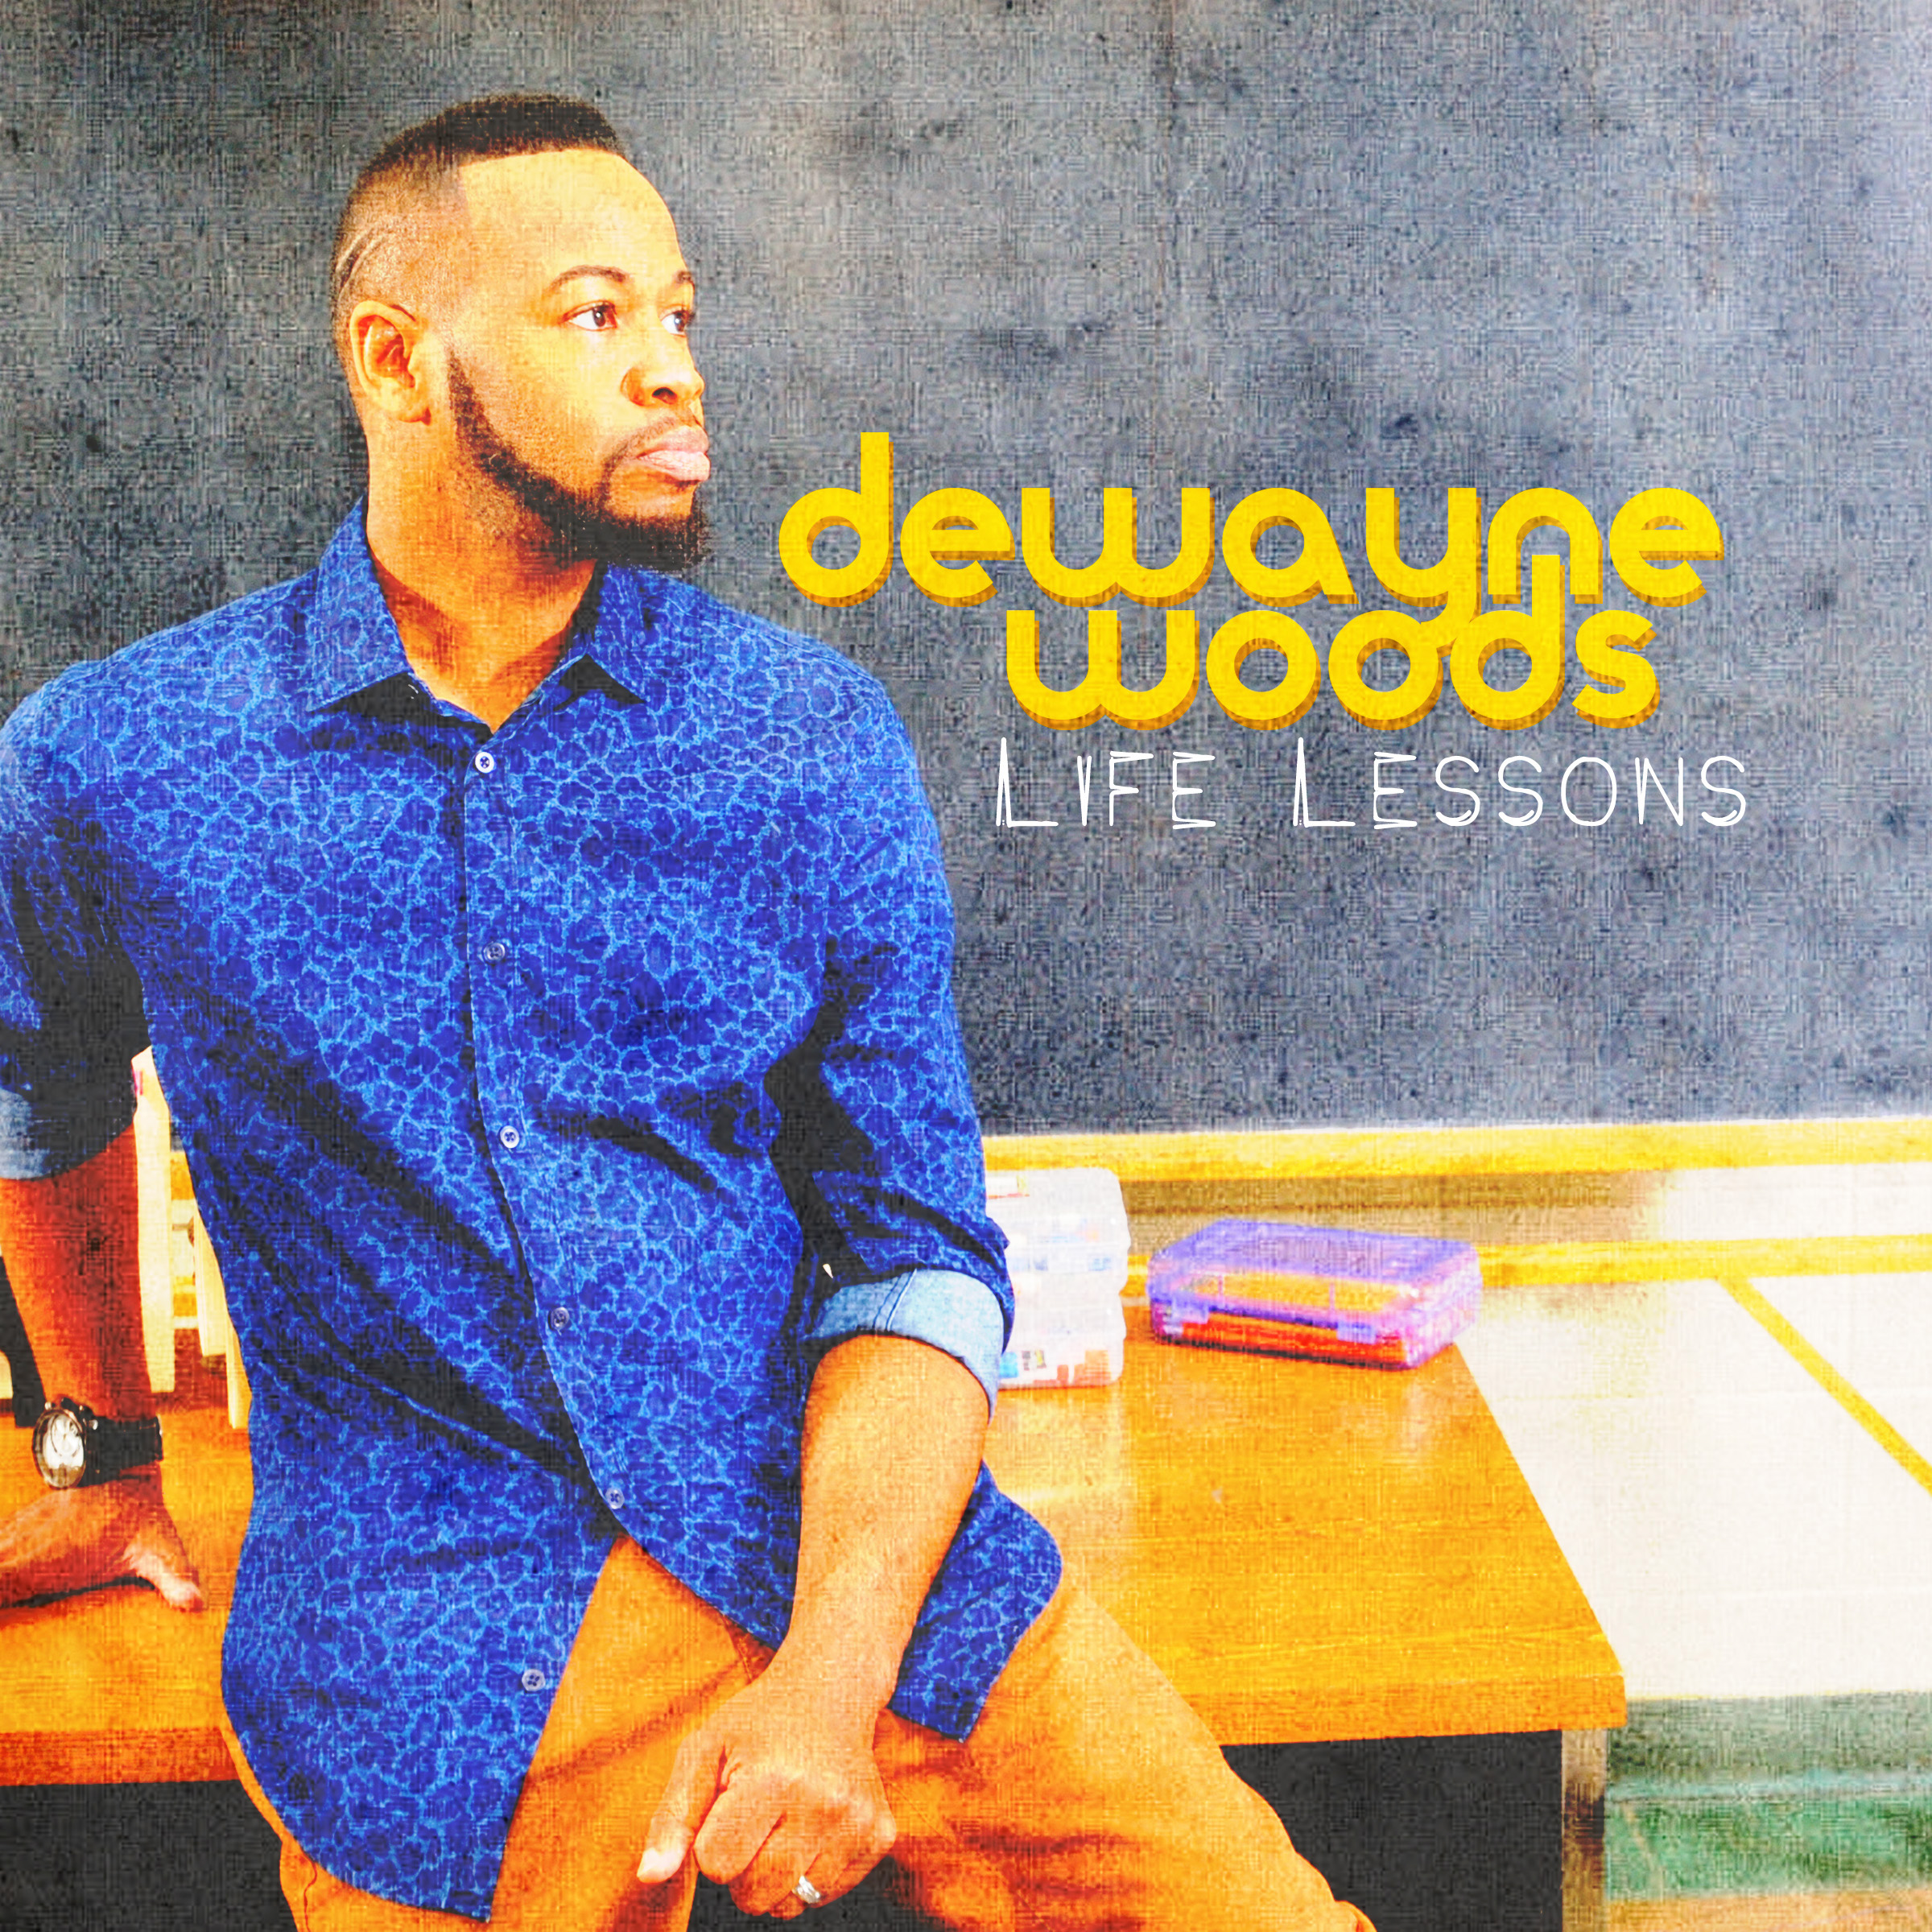 """""""Friend of Mine""""    """"Sometimes""""    """"Worryin' Never Helped""""    """"Relyin' """"    """"With You""""   Estee Bullock wrote and produced multiple songs for Gospel singer DeWayne Woods  Life Lessons  project along with additional co-writers and co-producers. """"Friend of Mine"""" was a featured single. Released in 2015."""